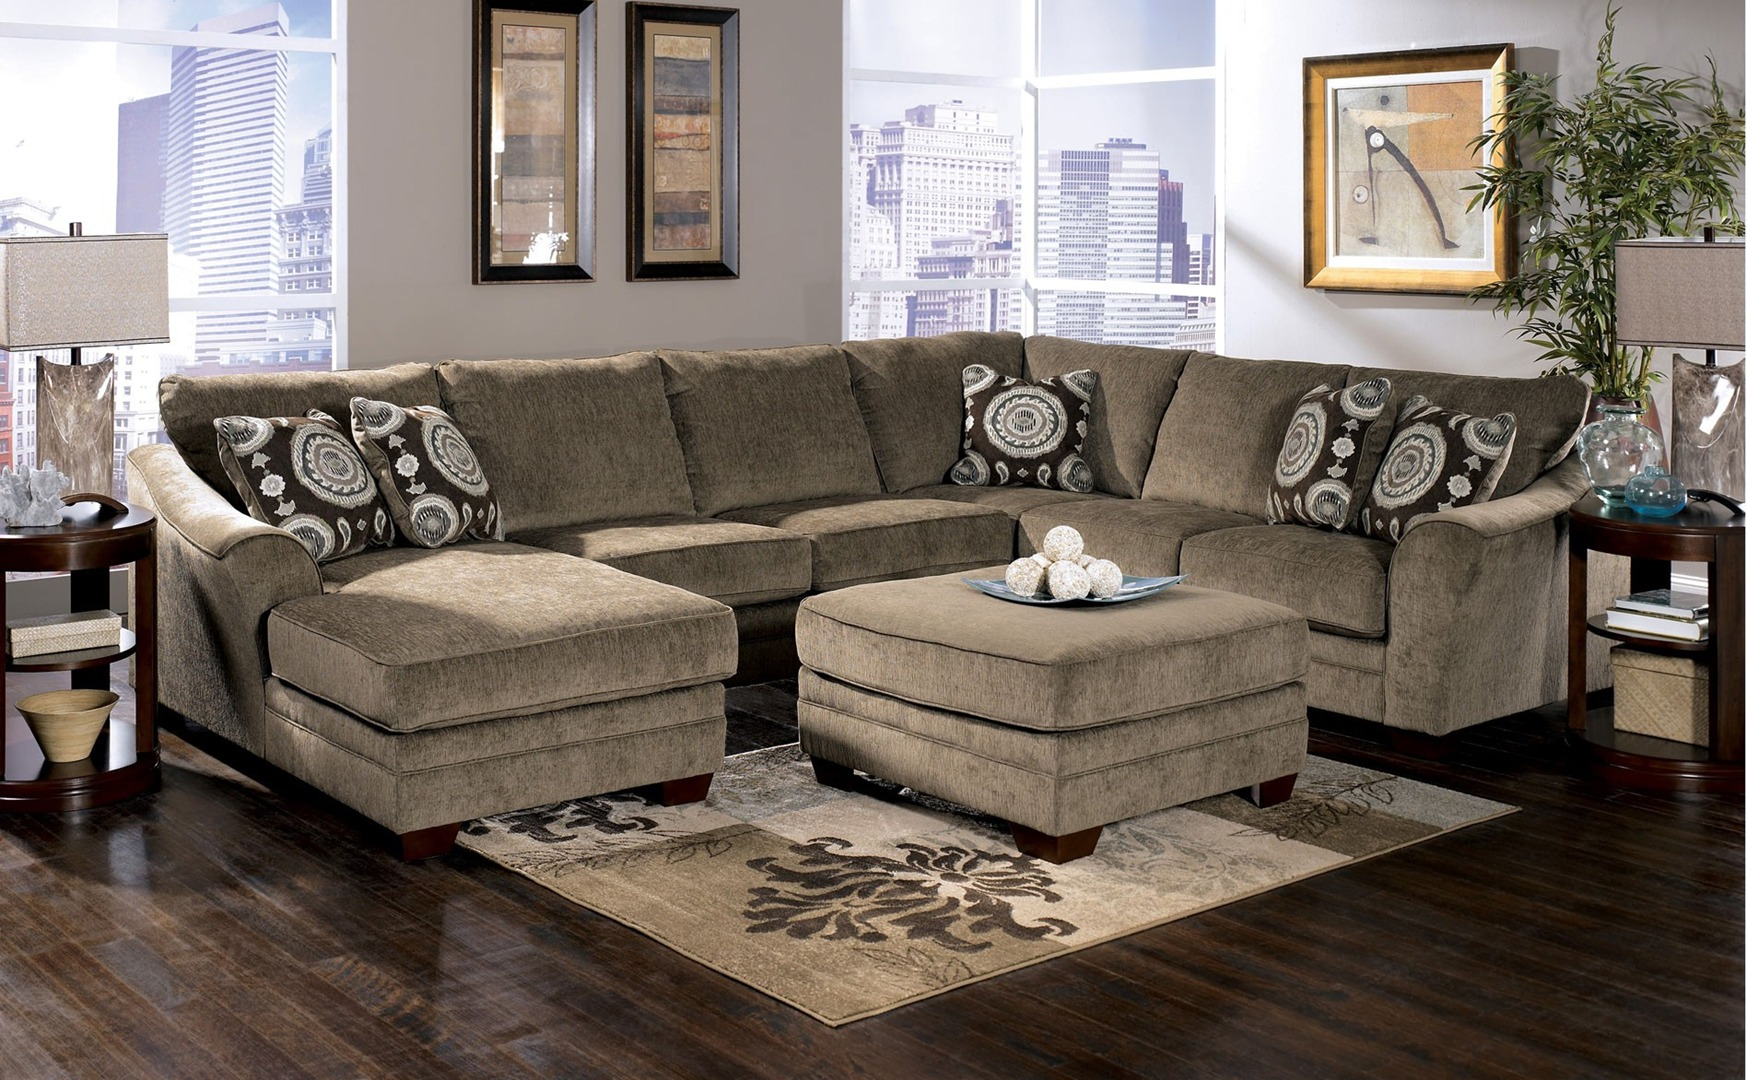 Living Room Furniture Phoenix Lowest Price On New And Used Furniture Since 1972 Shop Jk Furniture